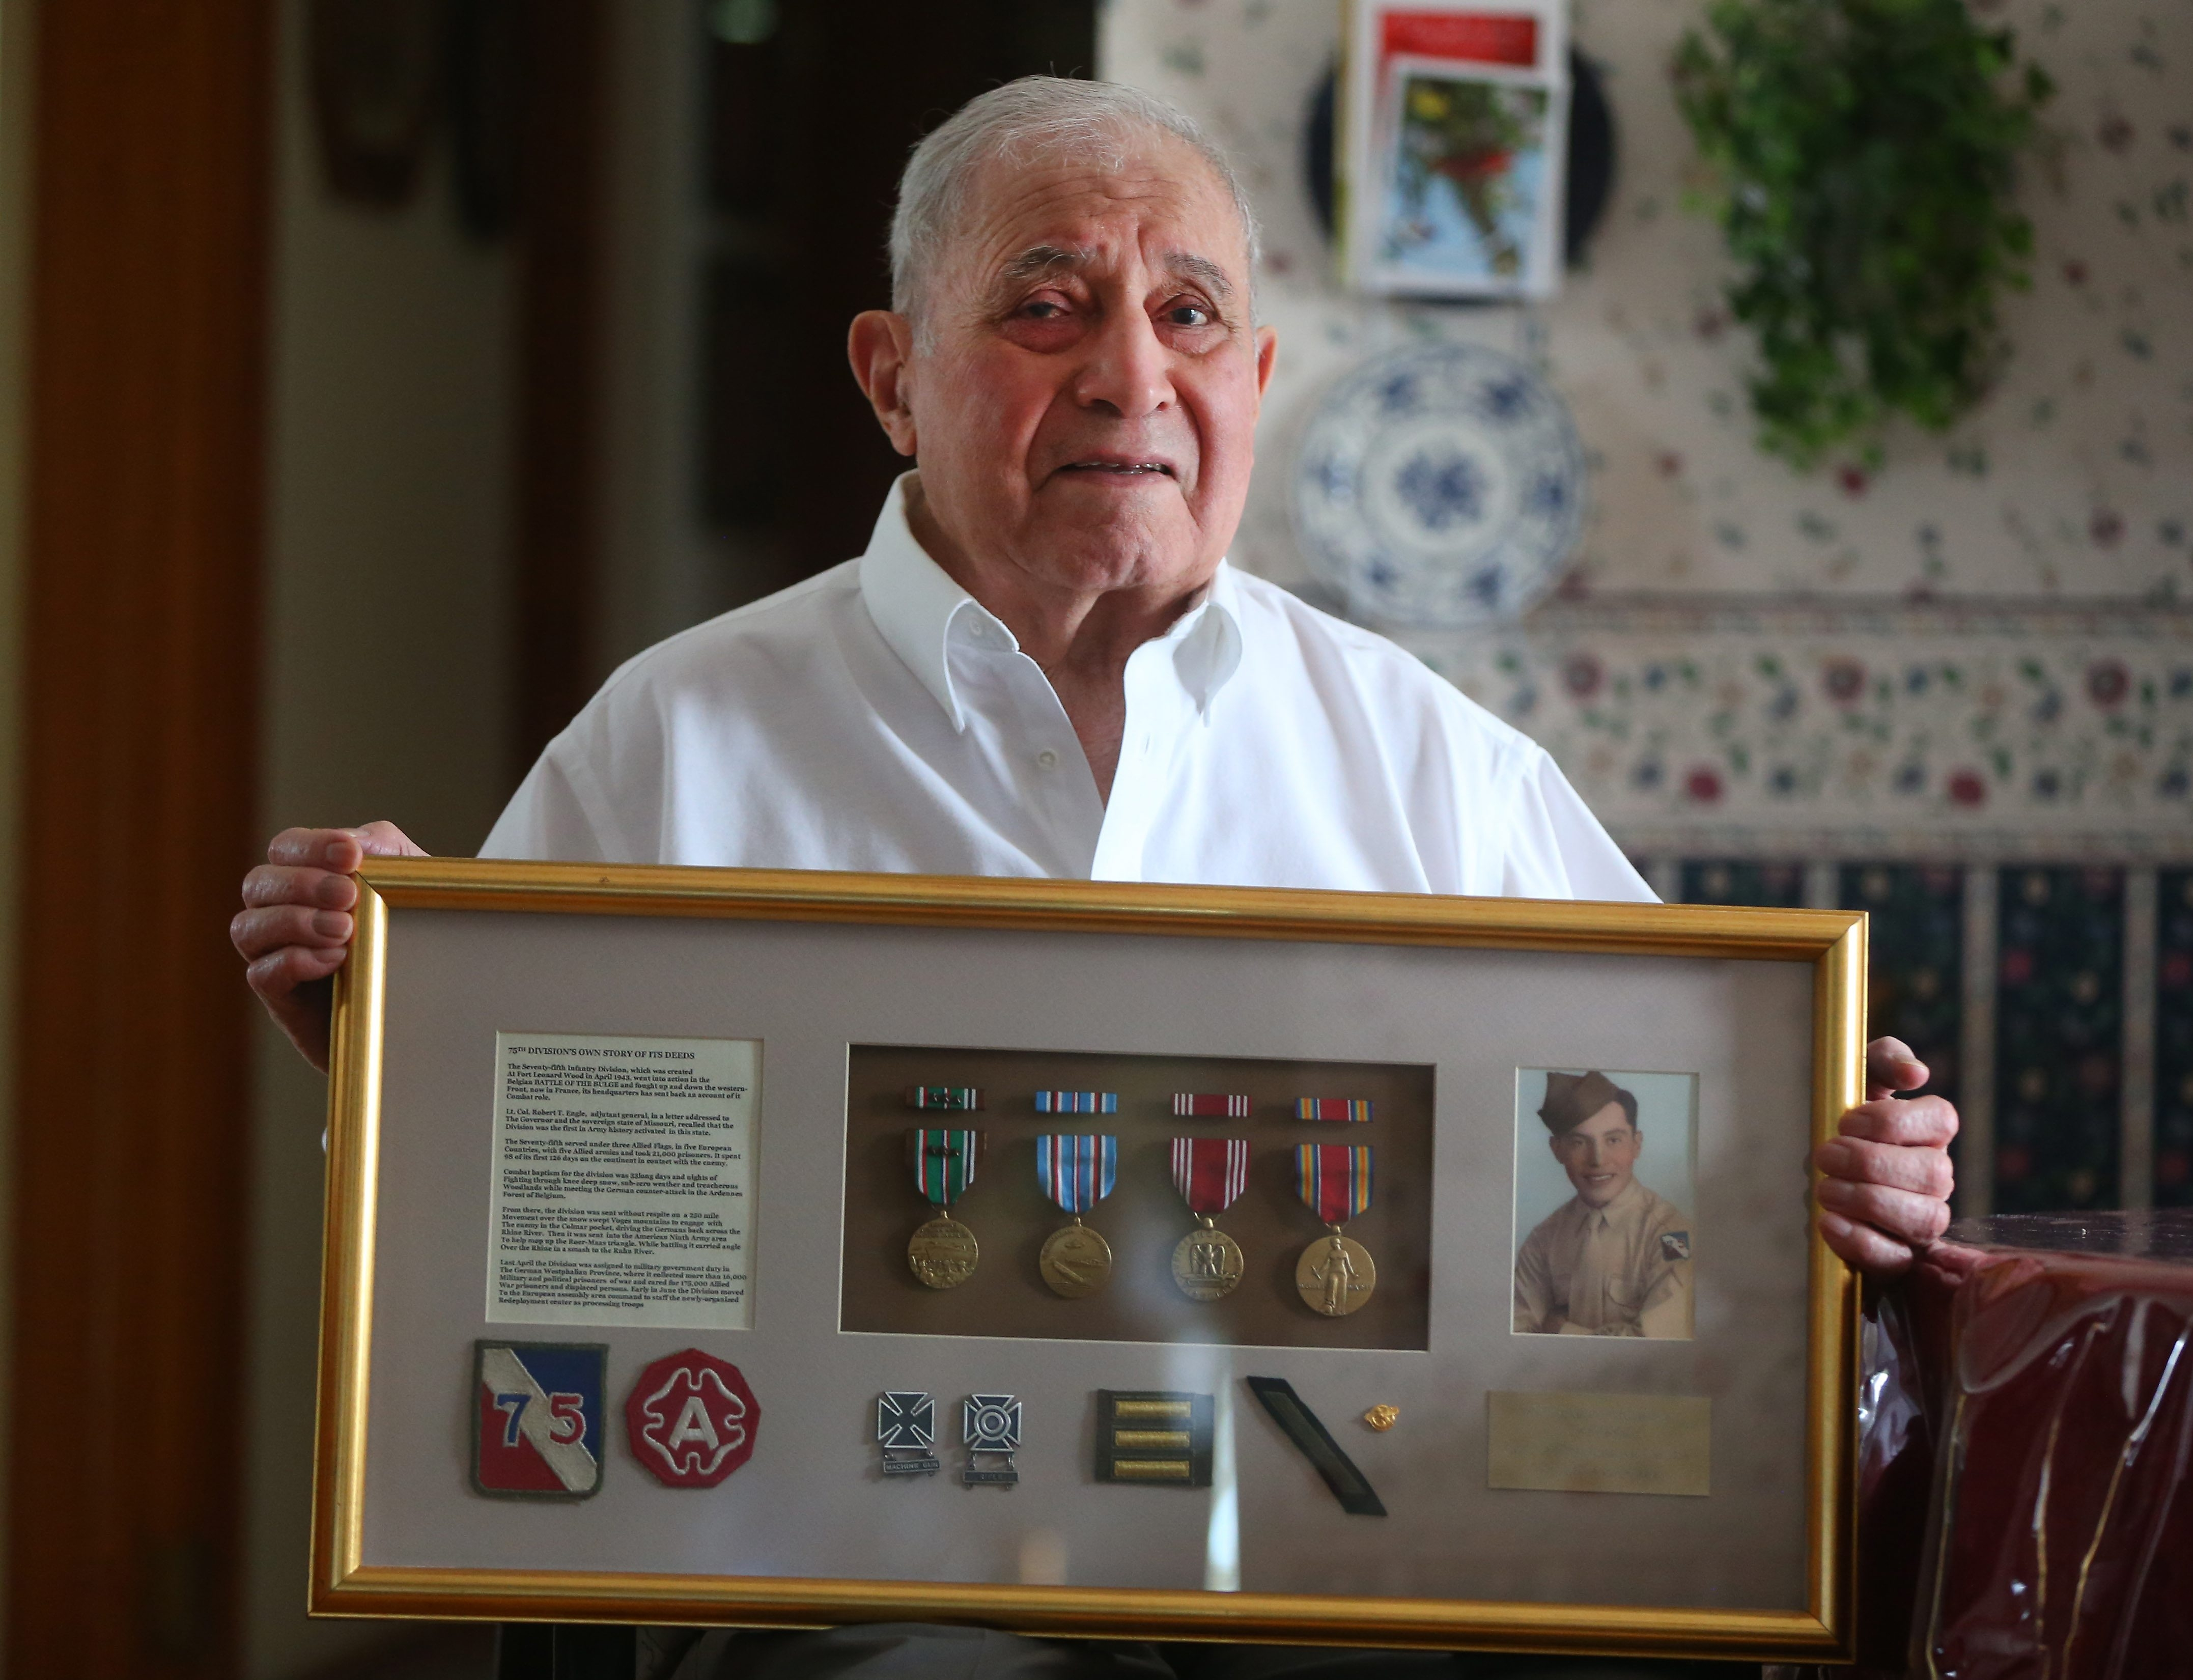 Ramon Romero shows medals, insignias and other WW II items that he displays in his home.